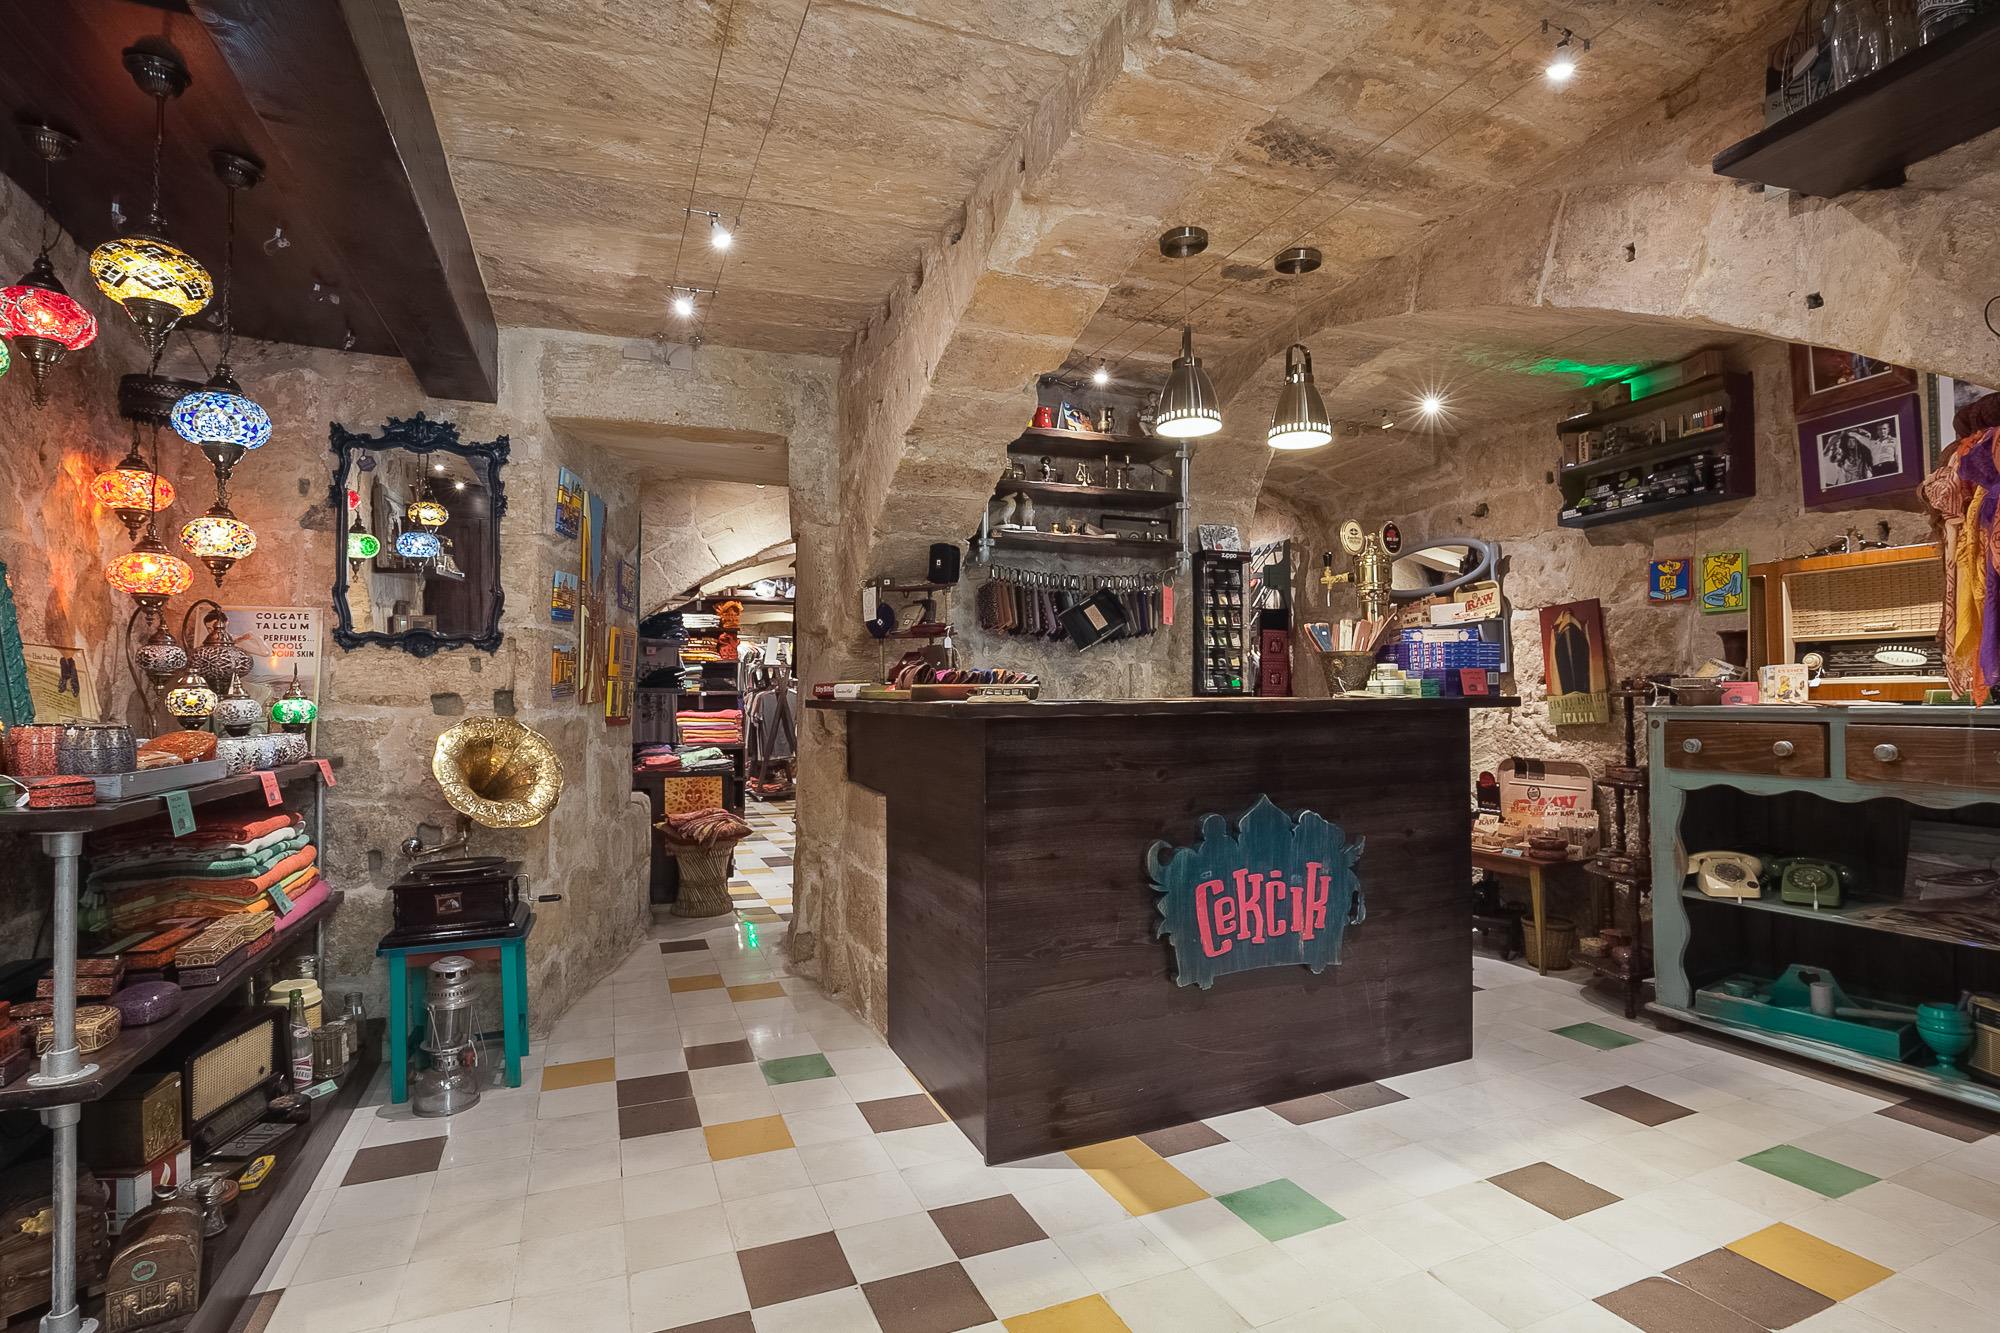 Cekcik shop in Valletta